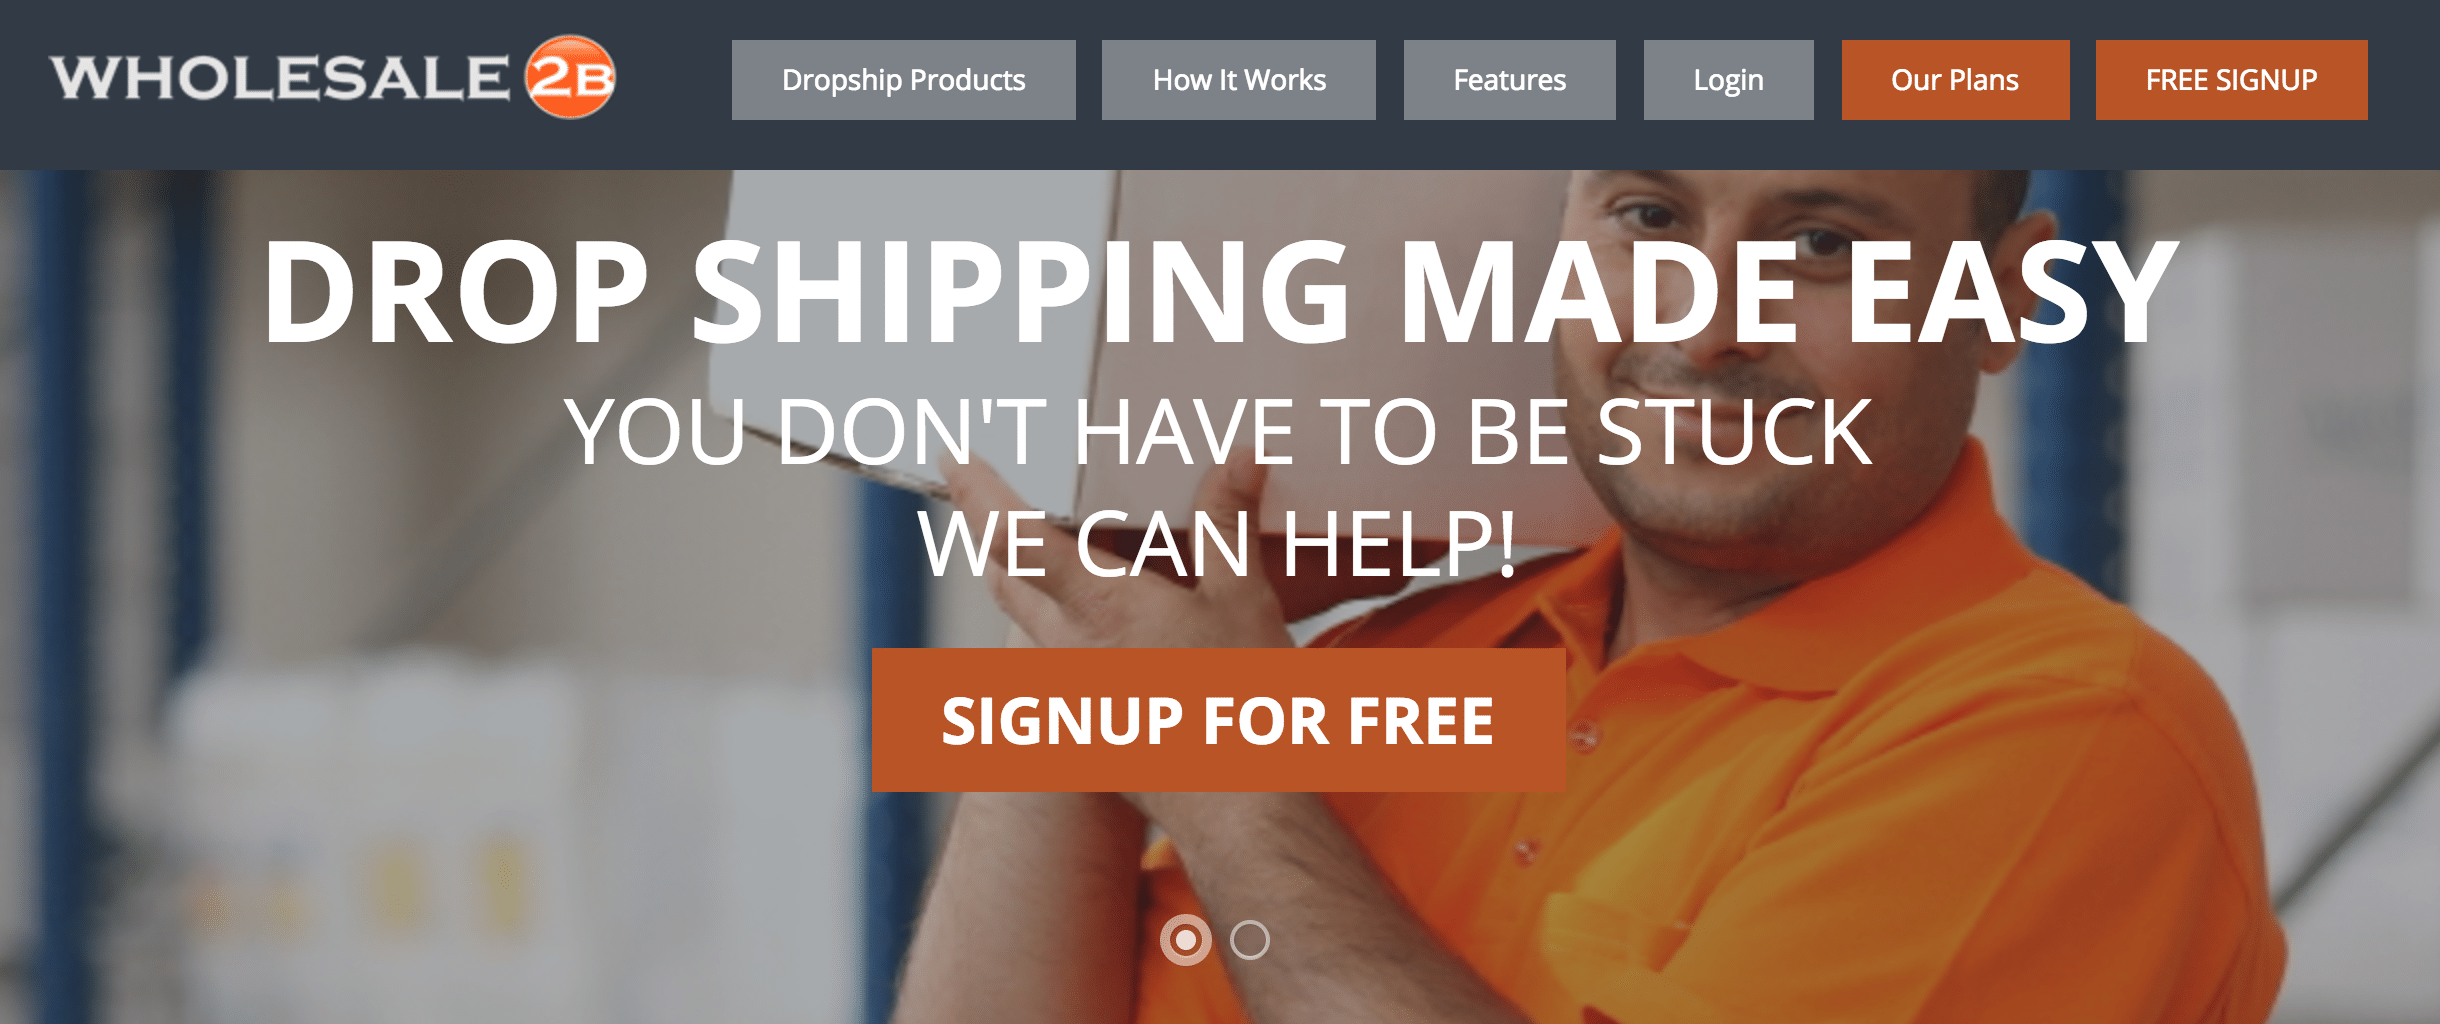 8 Best Drop Shipping Companies for Your eCommerce Business